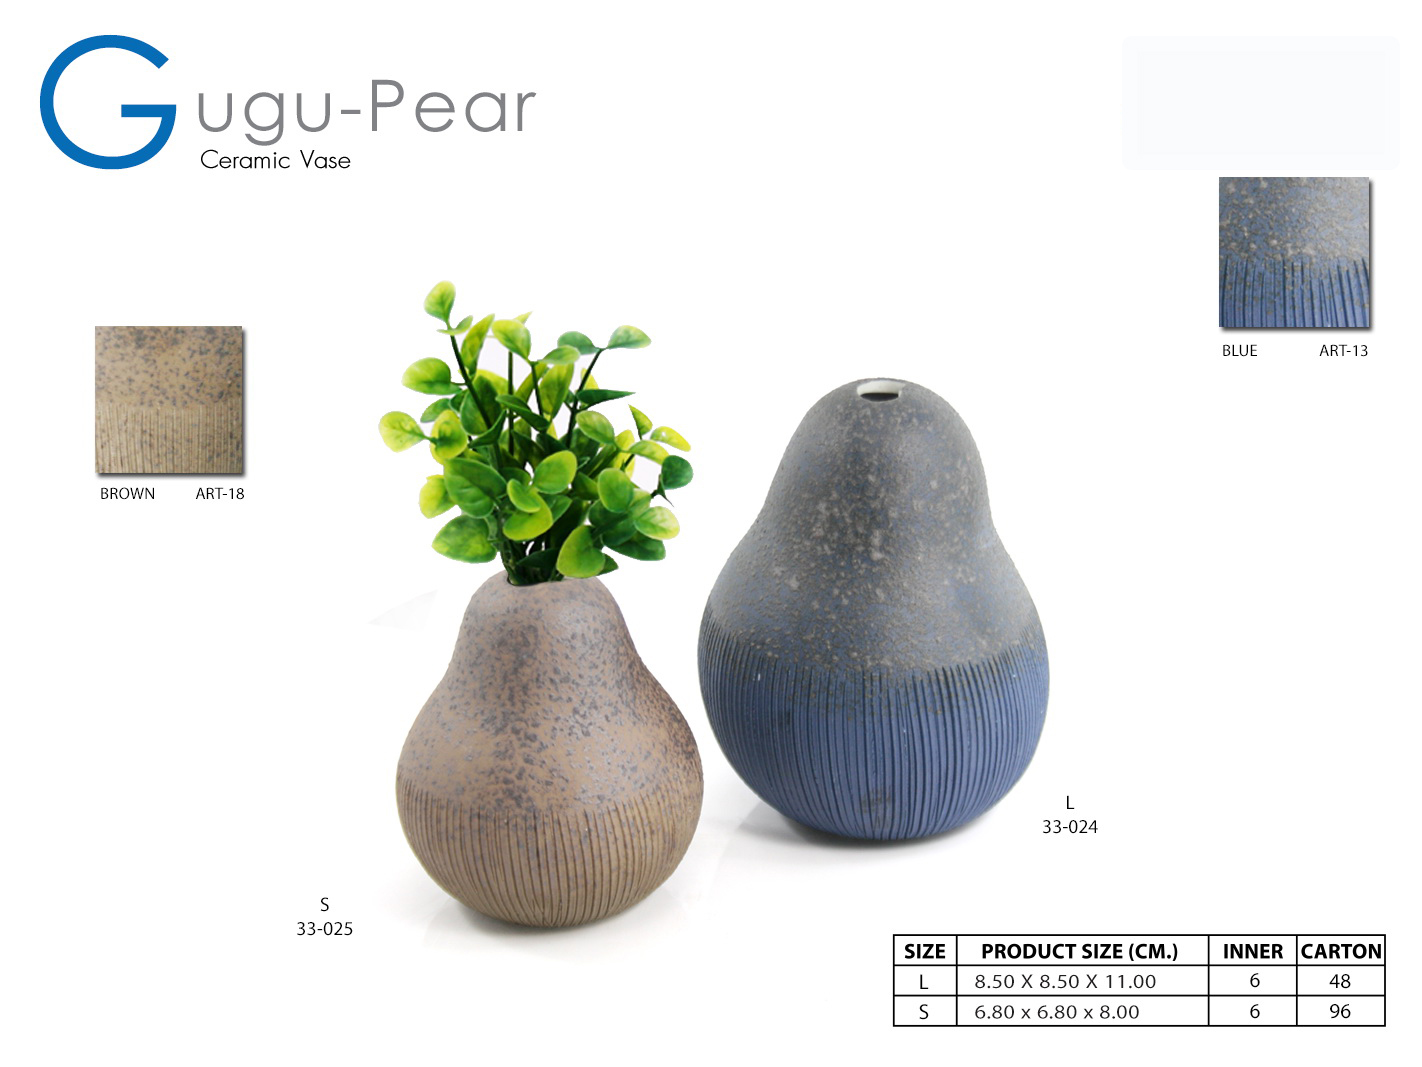 PSCV-GUGU-PEAR-L-SF-9-ART-13-18